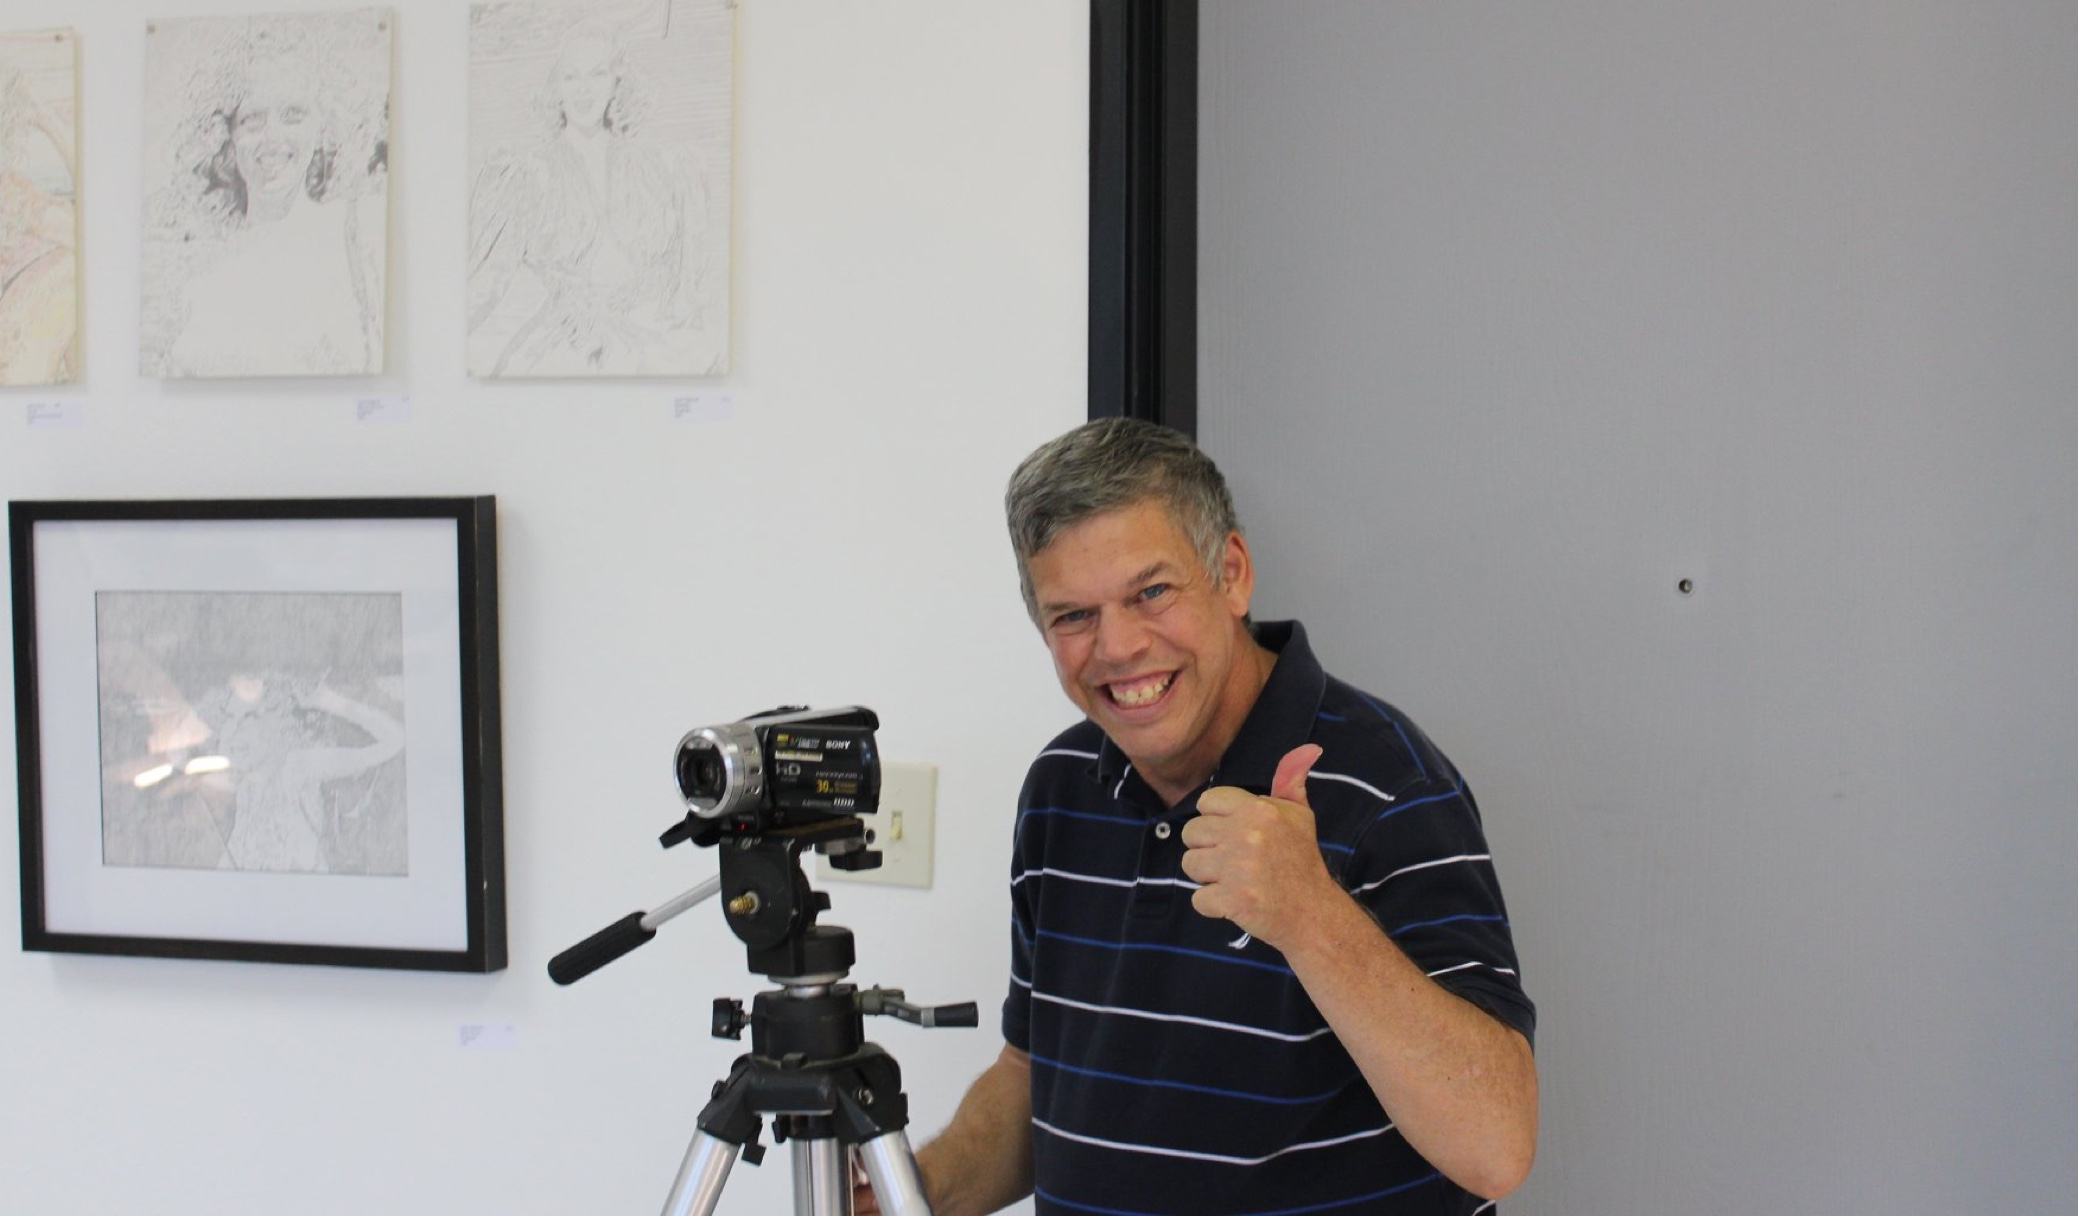 Man standing behind a video camera on tripod giving thumbs up in an art gallery.